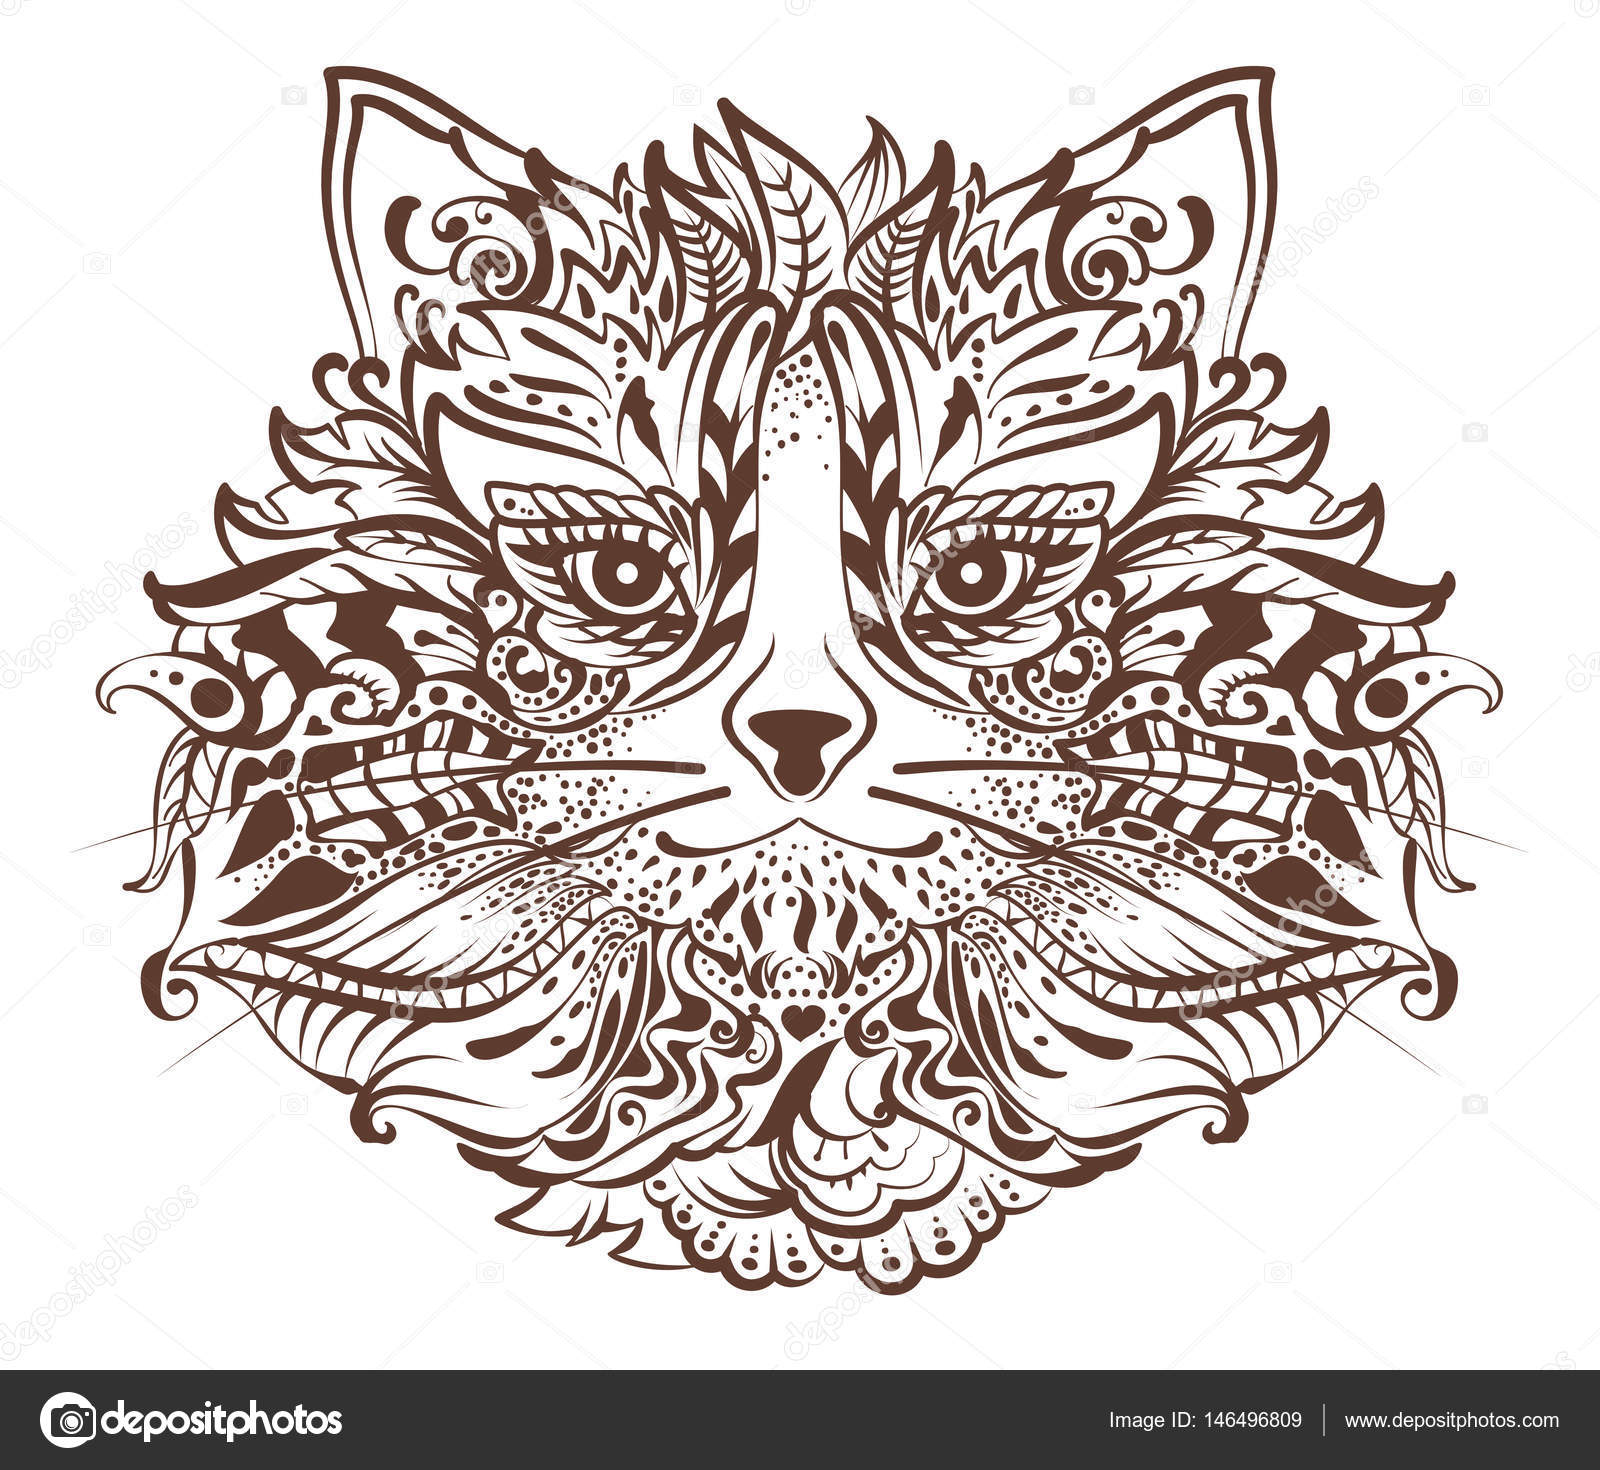 Tatouage Dessin Graphique Du Monochrome Tete Chat Image